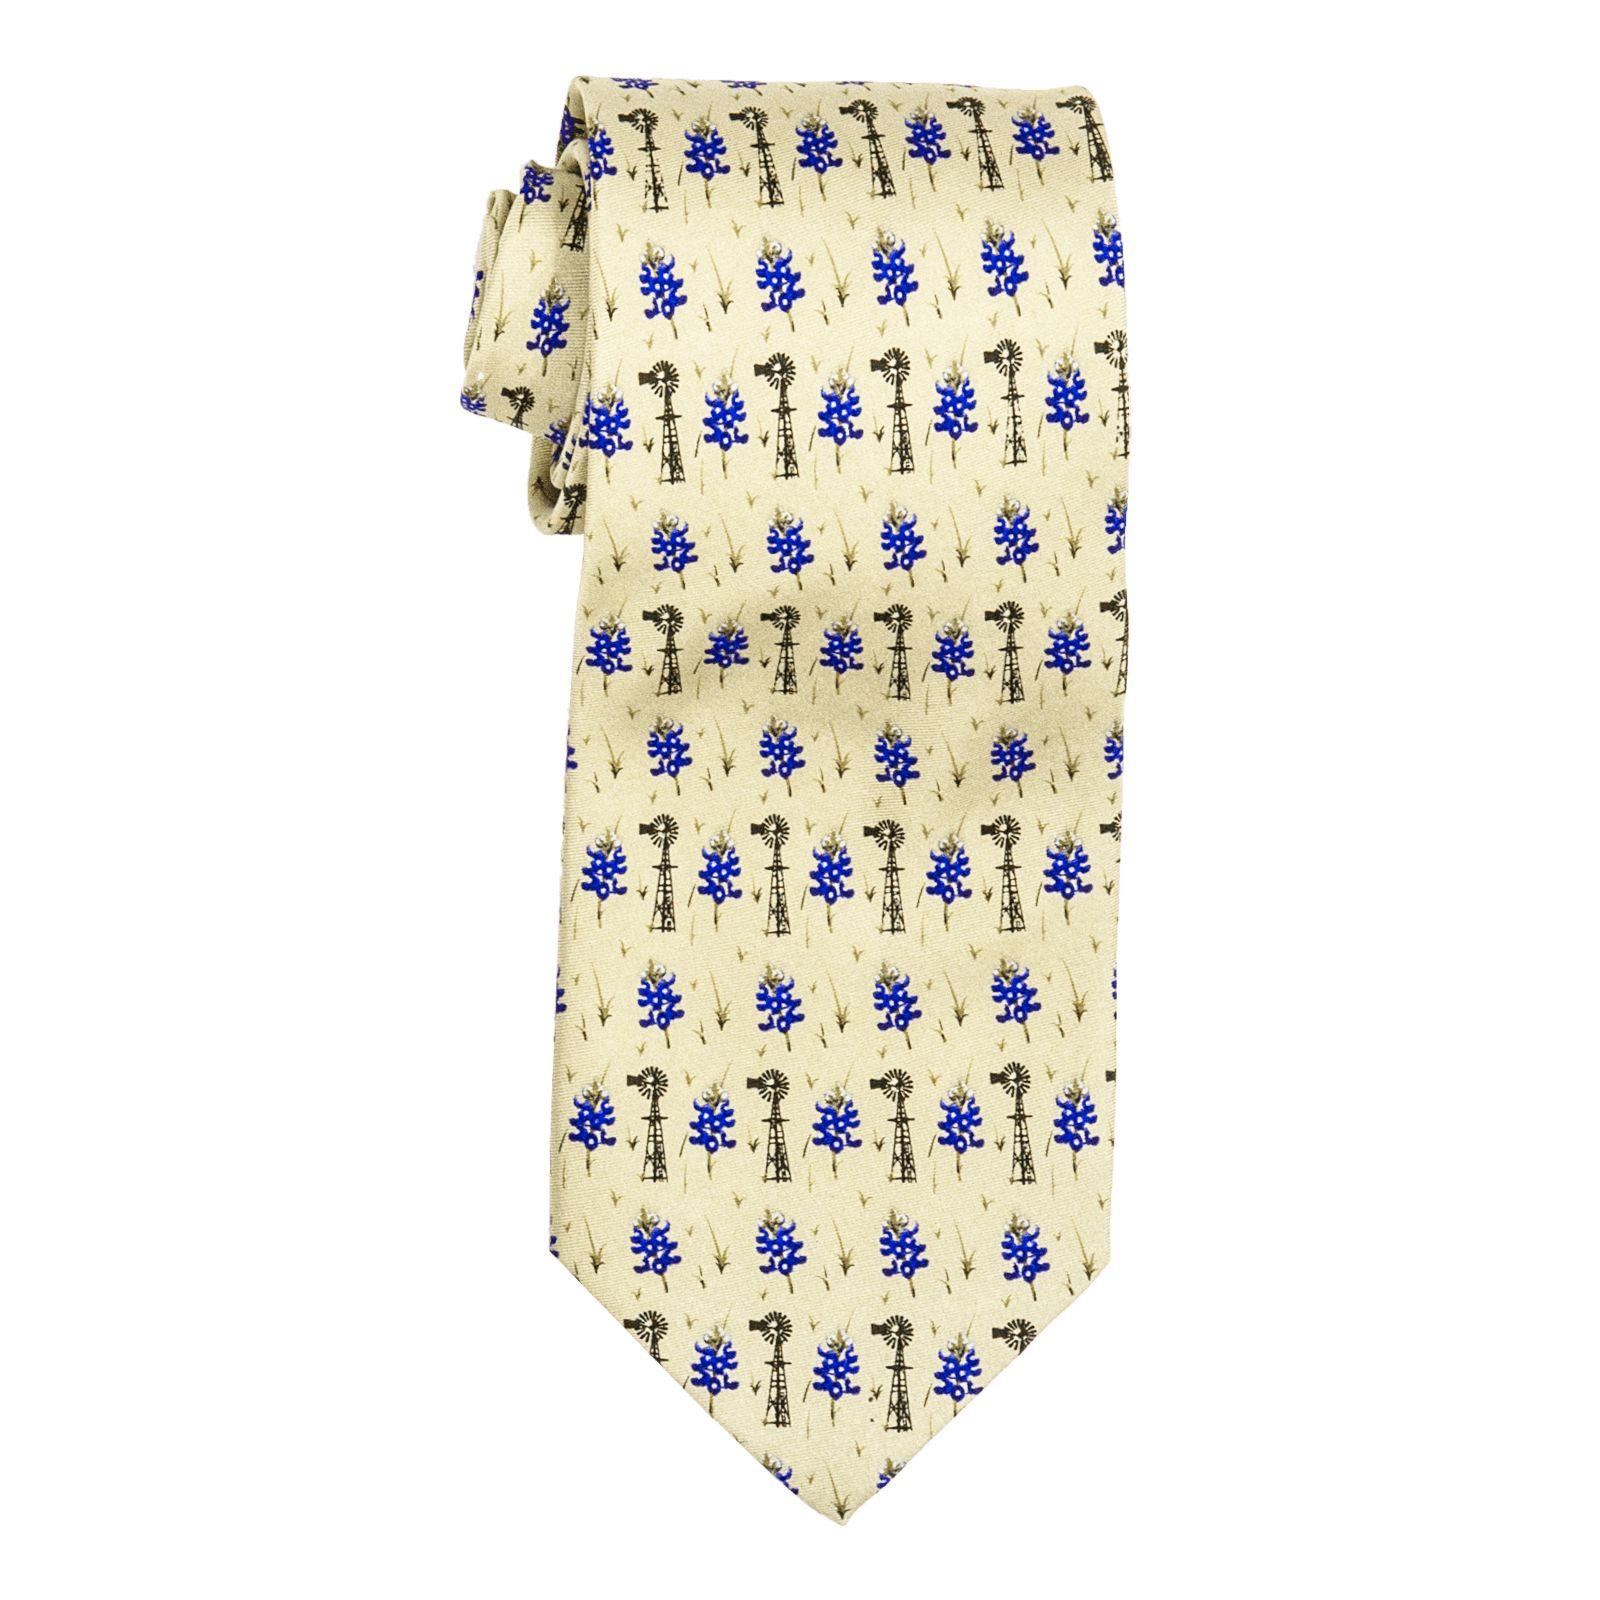 Bluebonnet and Windmill Tie